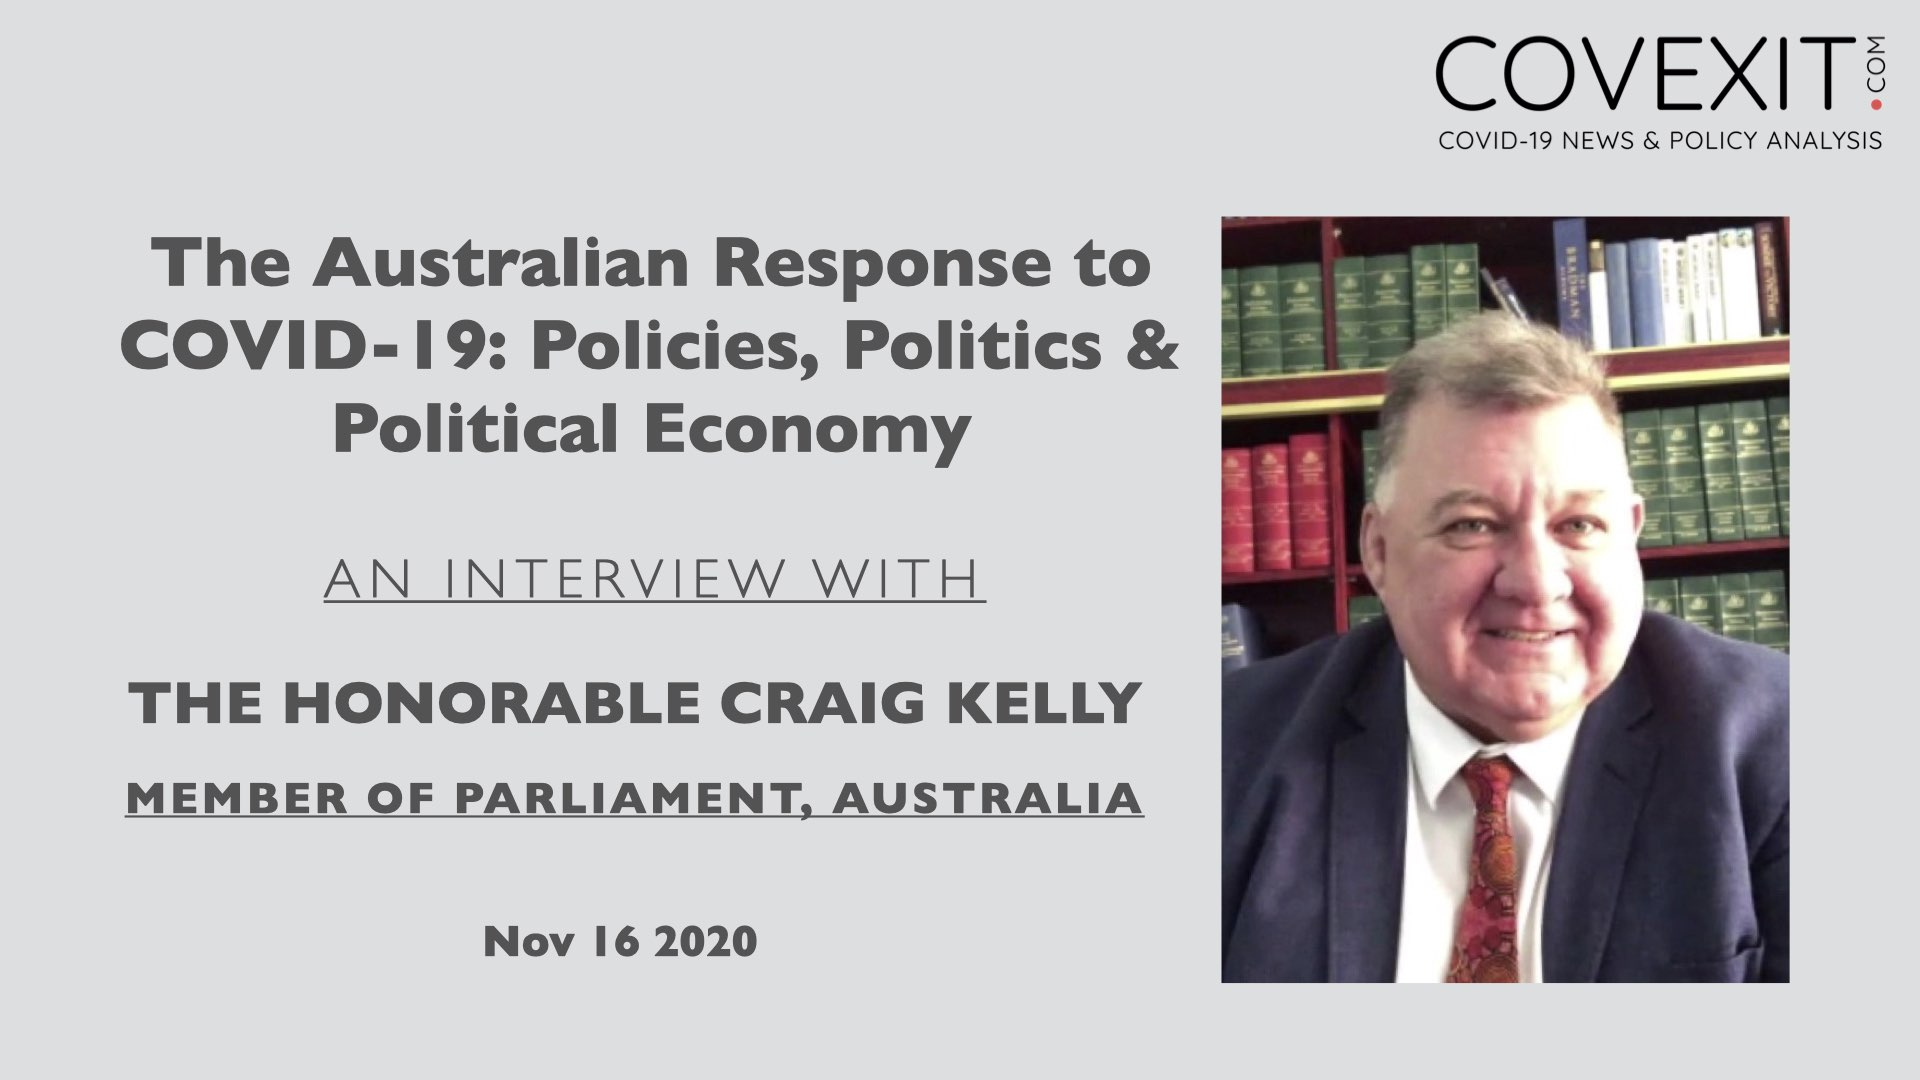 The Honorable Craig Kelly Interview